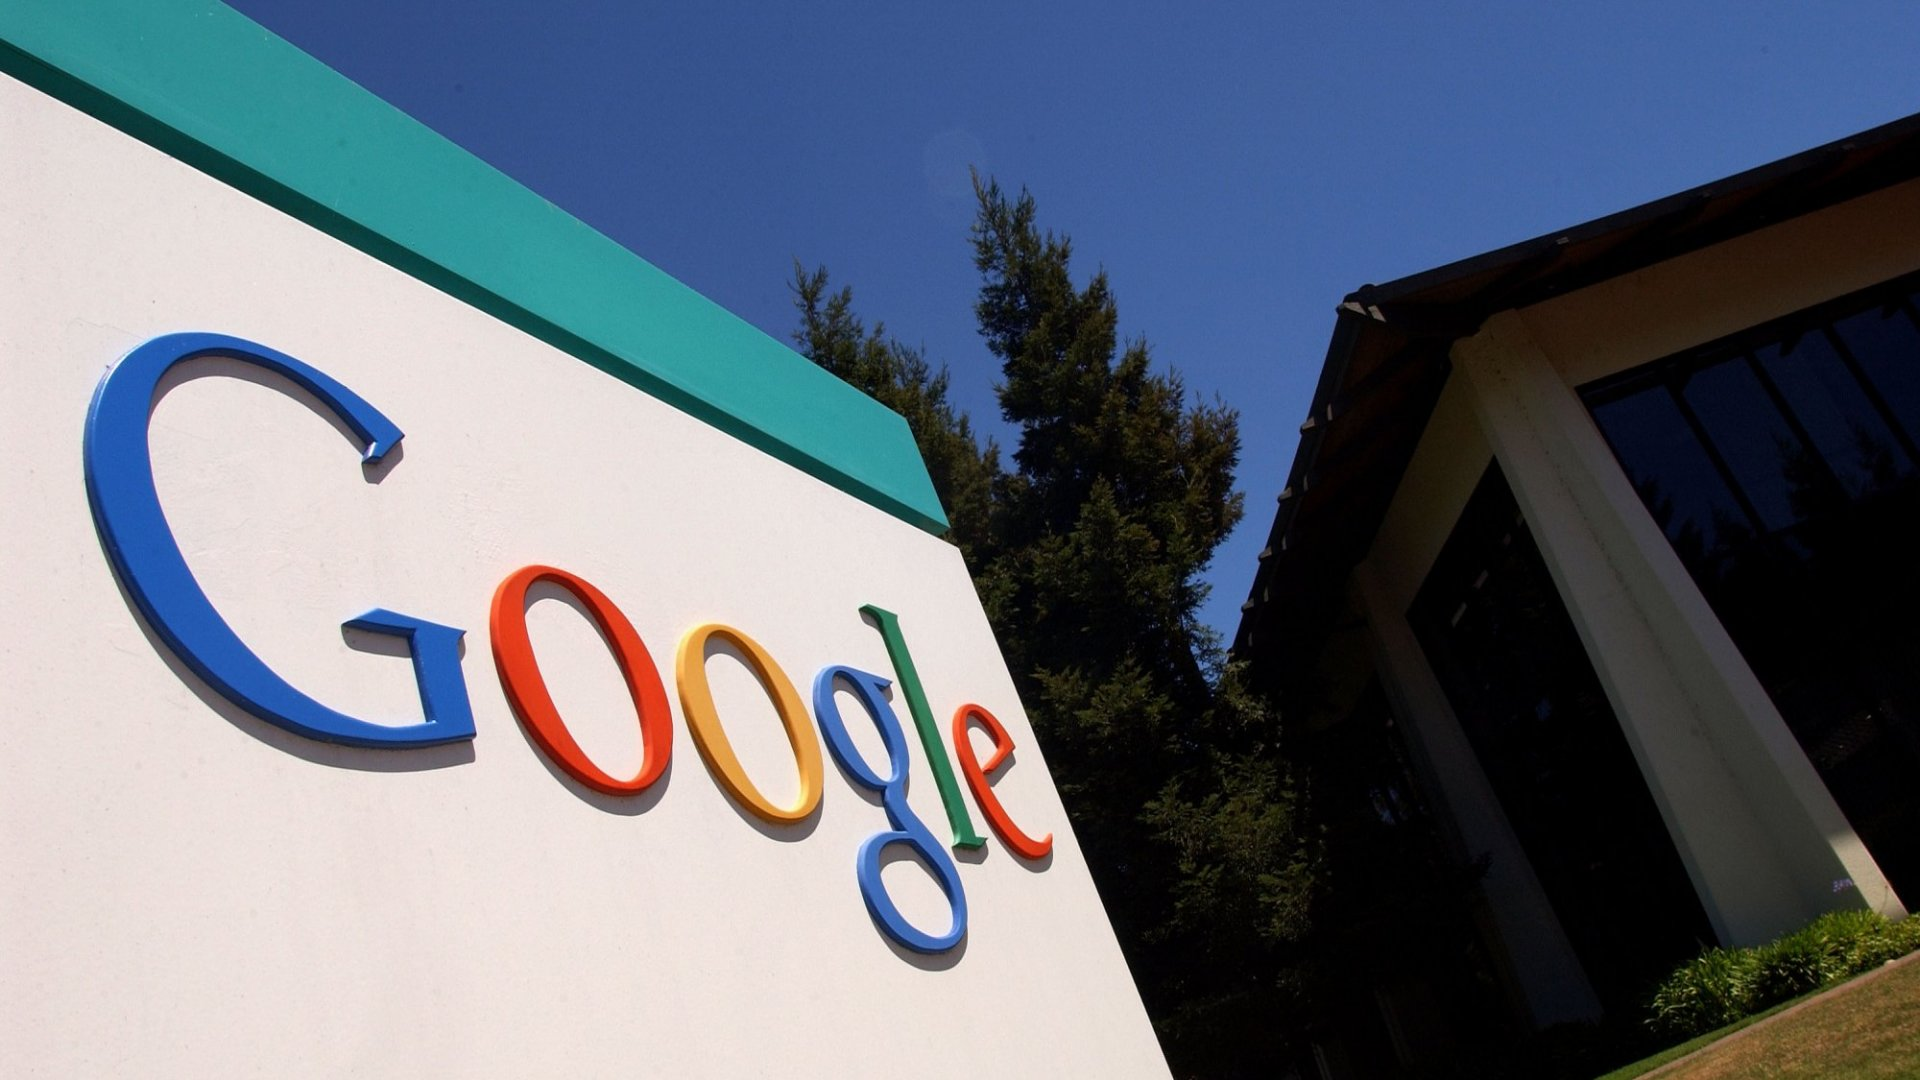 Google Said It Will Invest $1 Billion in San Francisco Bay Area Housing to Help With Housing Crisis